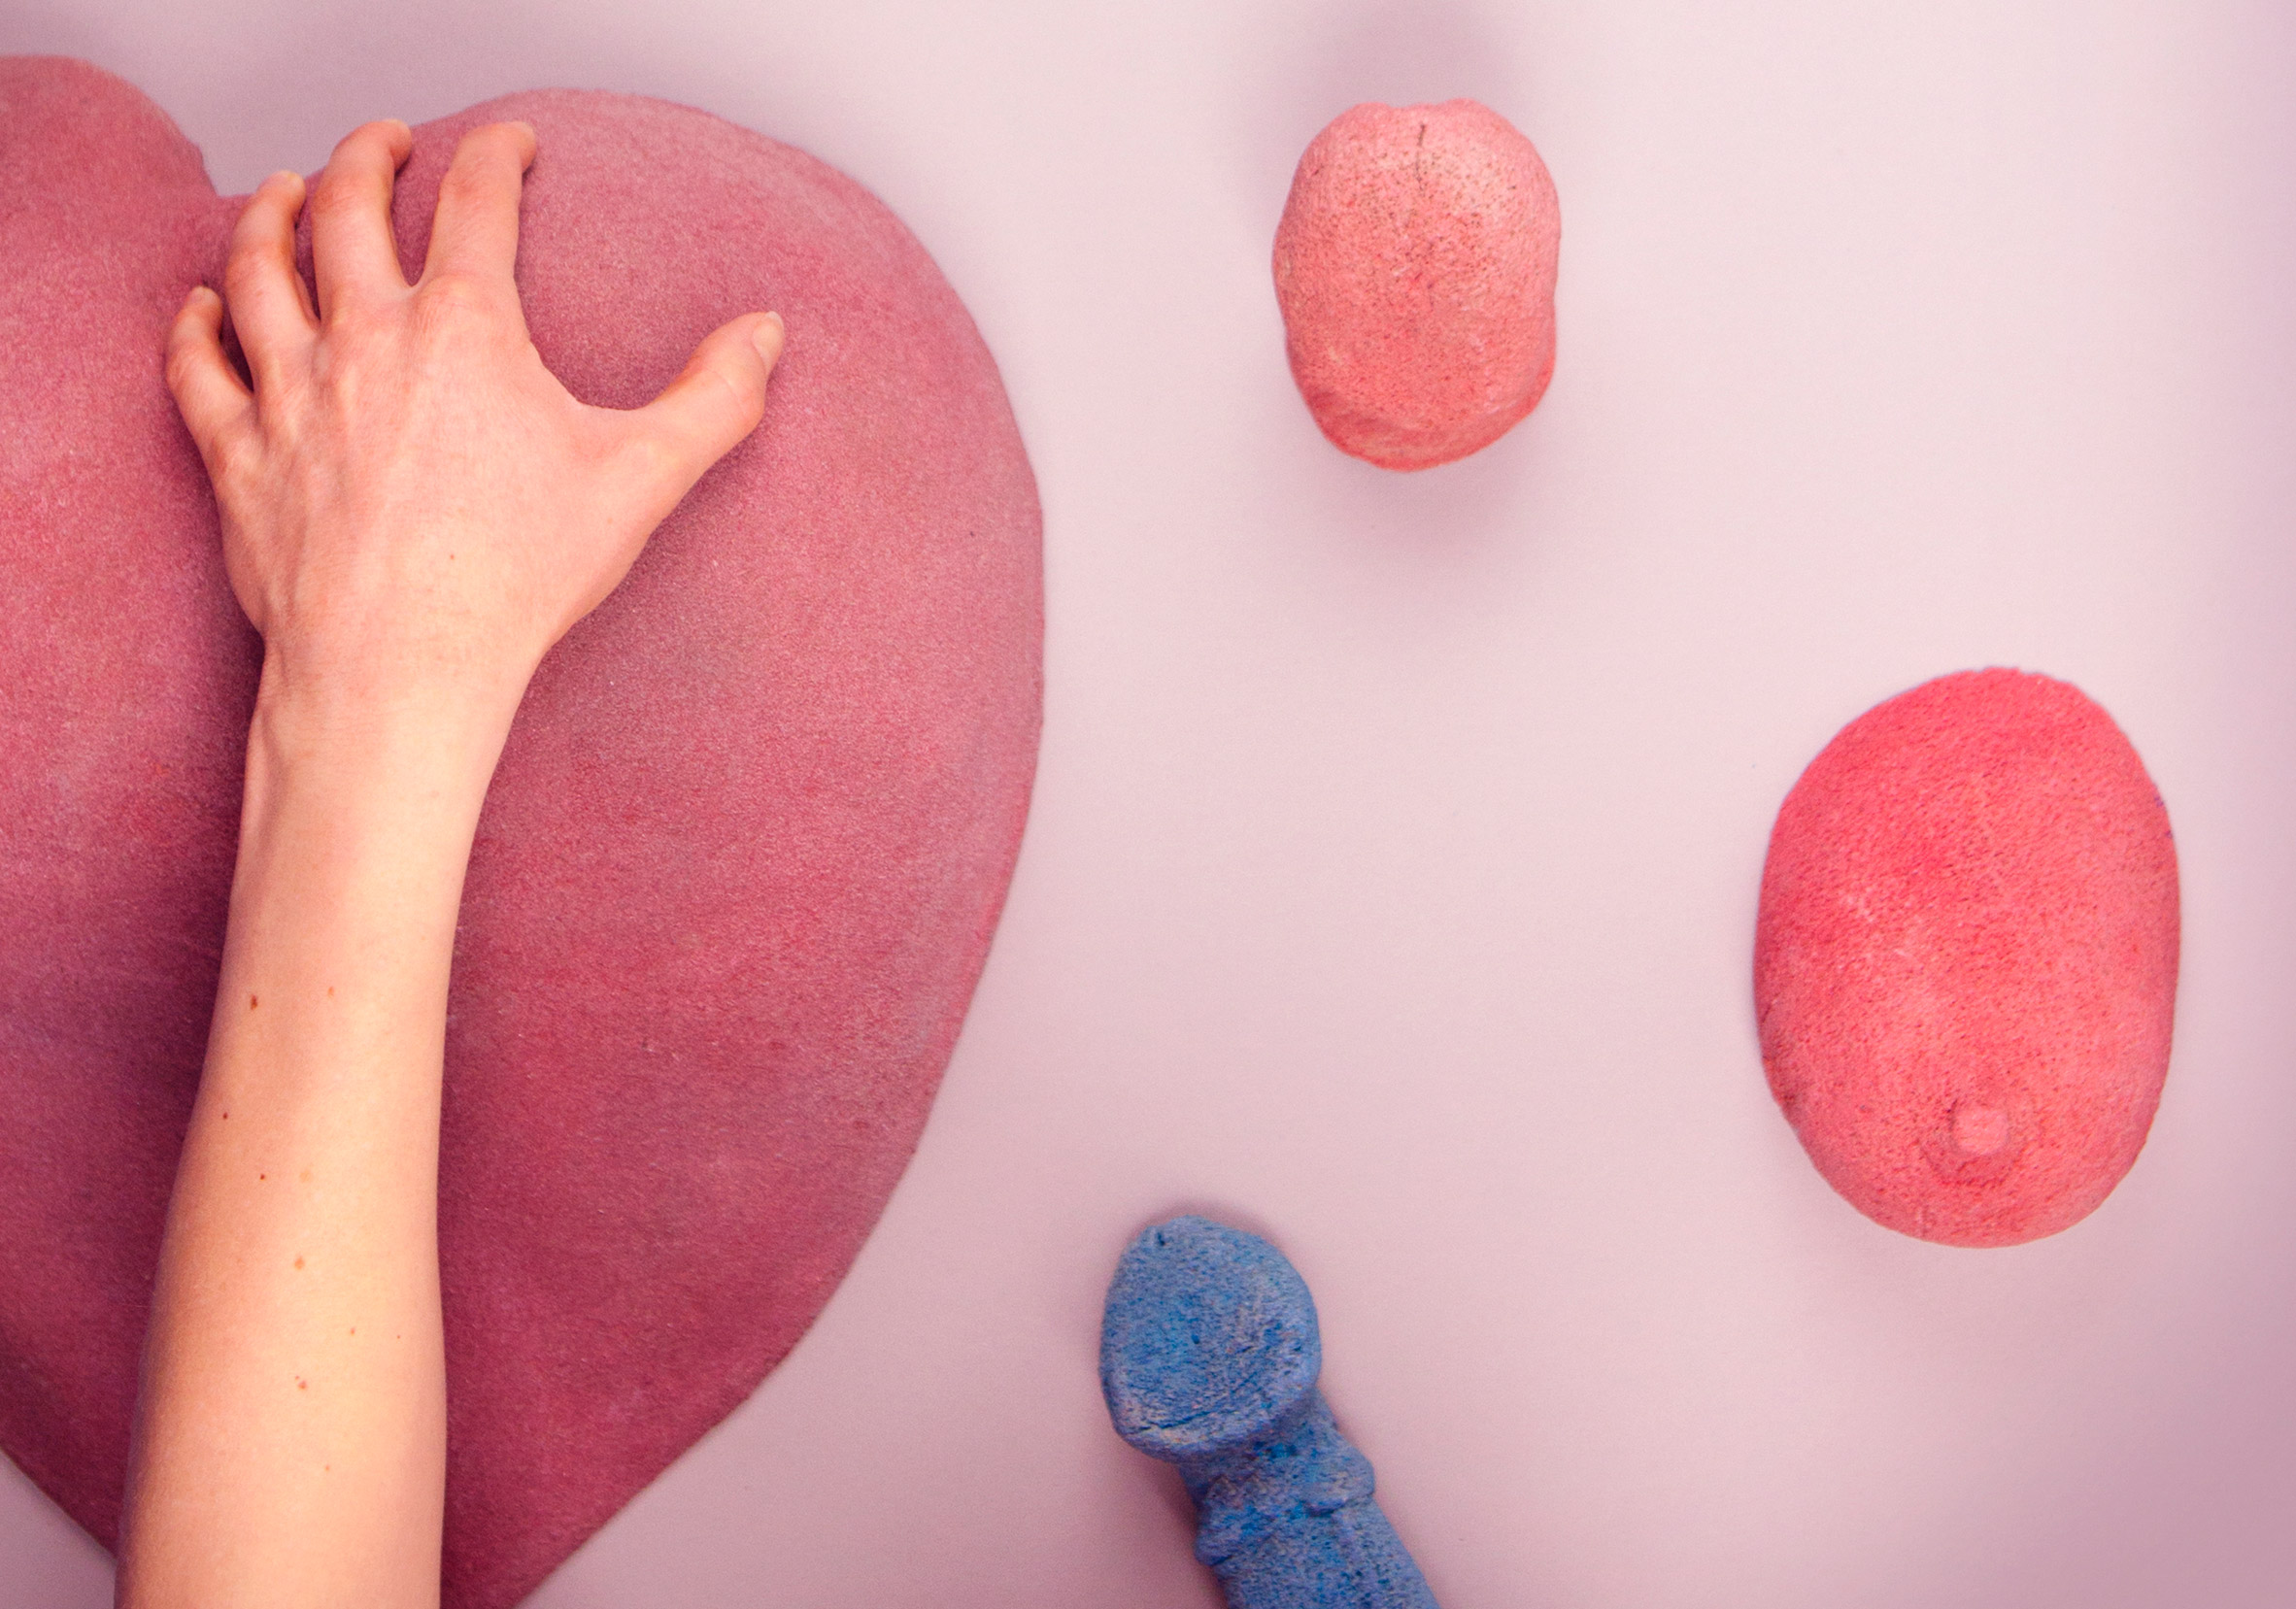 Bompas & Parr's Grope Mountain is an erotic take on the climbing wall